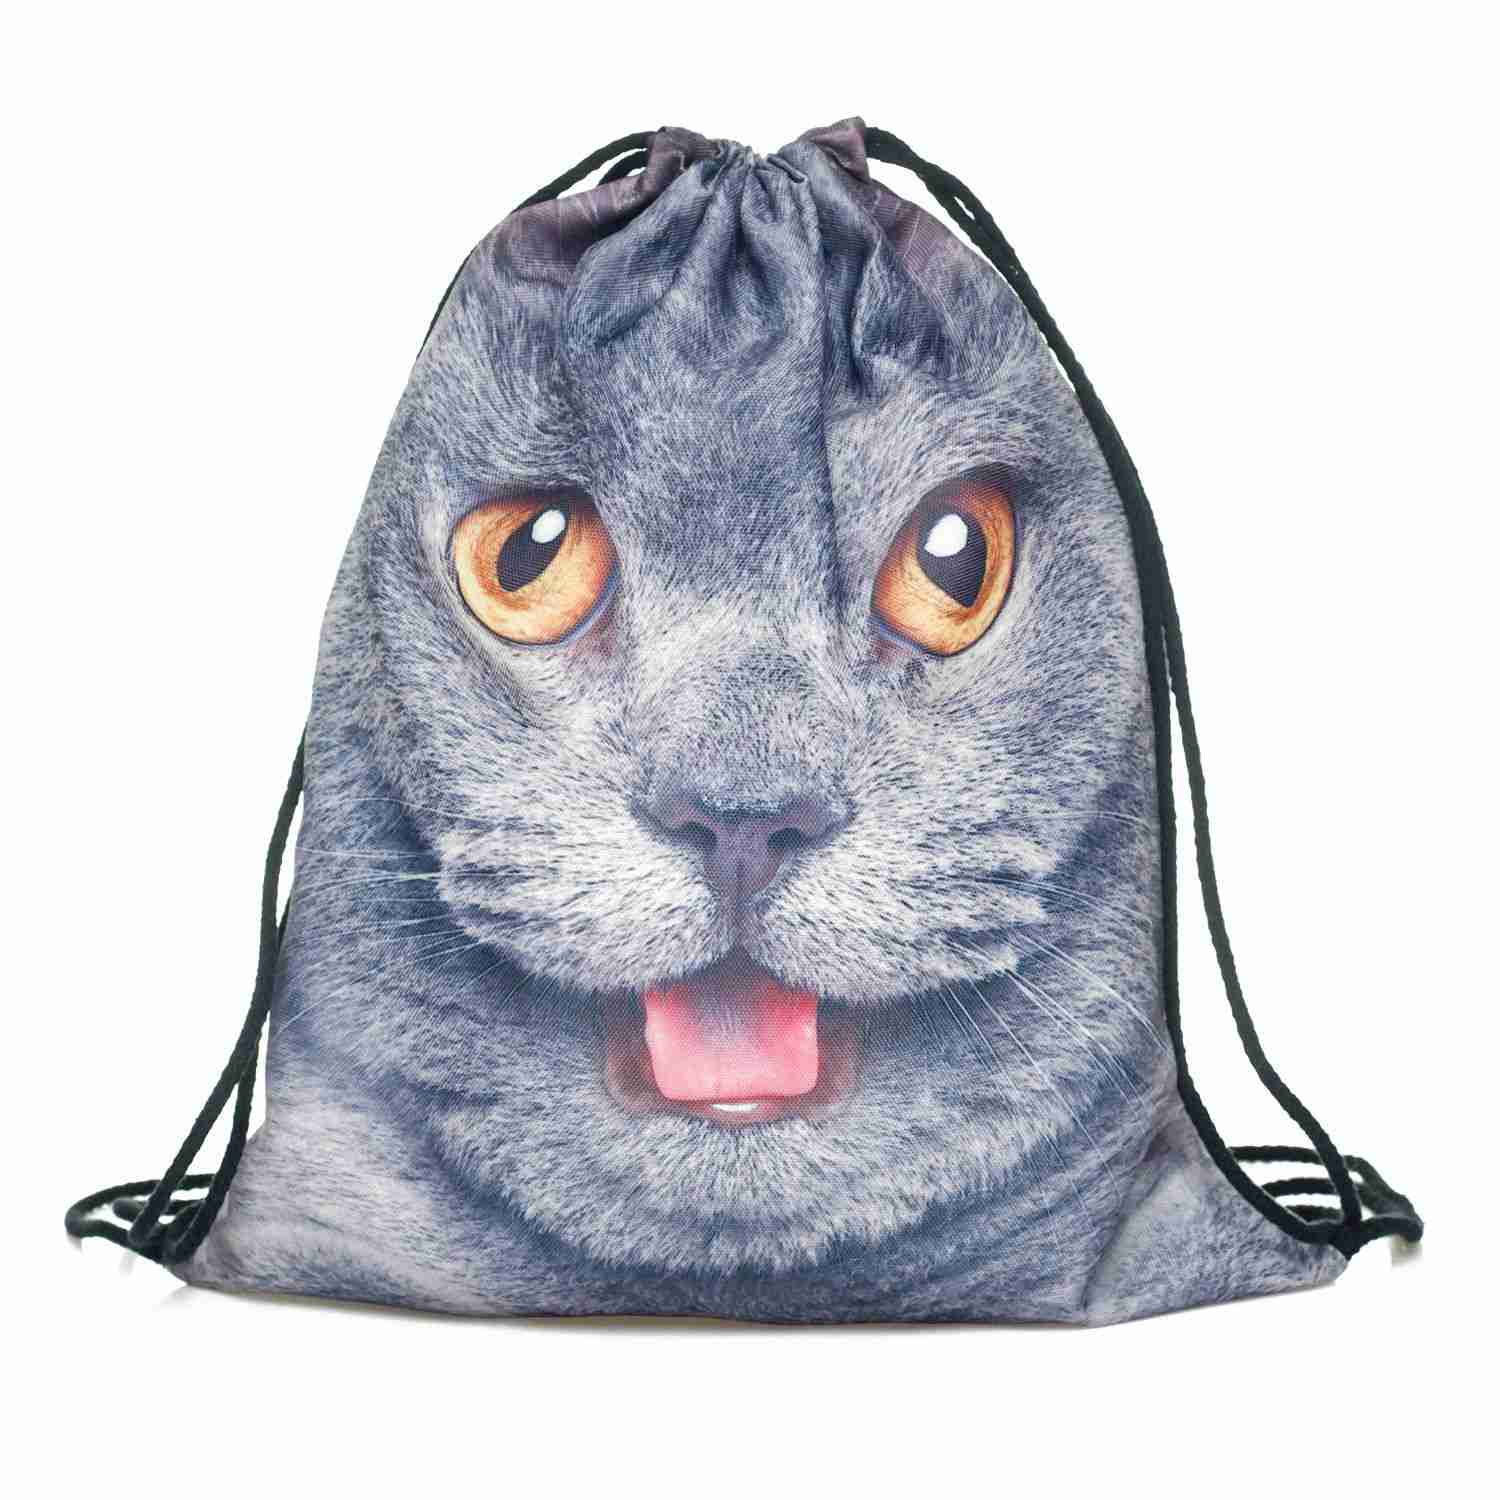 DCOS-Mens Womens Kids bag Teenage Drawstring Bag Shoulder School Backpack Rucksack Handbag String Travel Gym(cat)